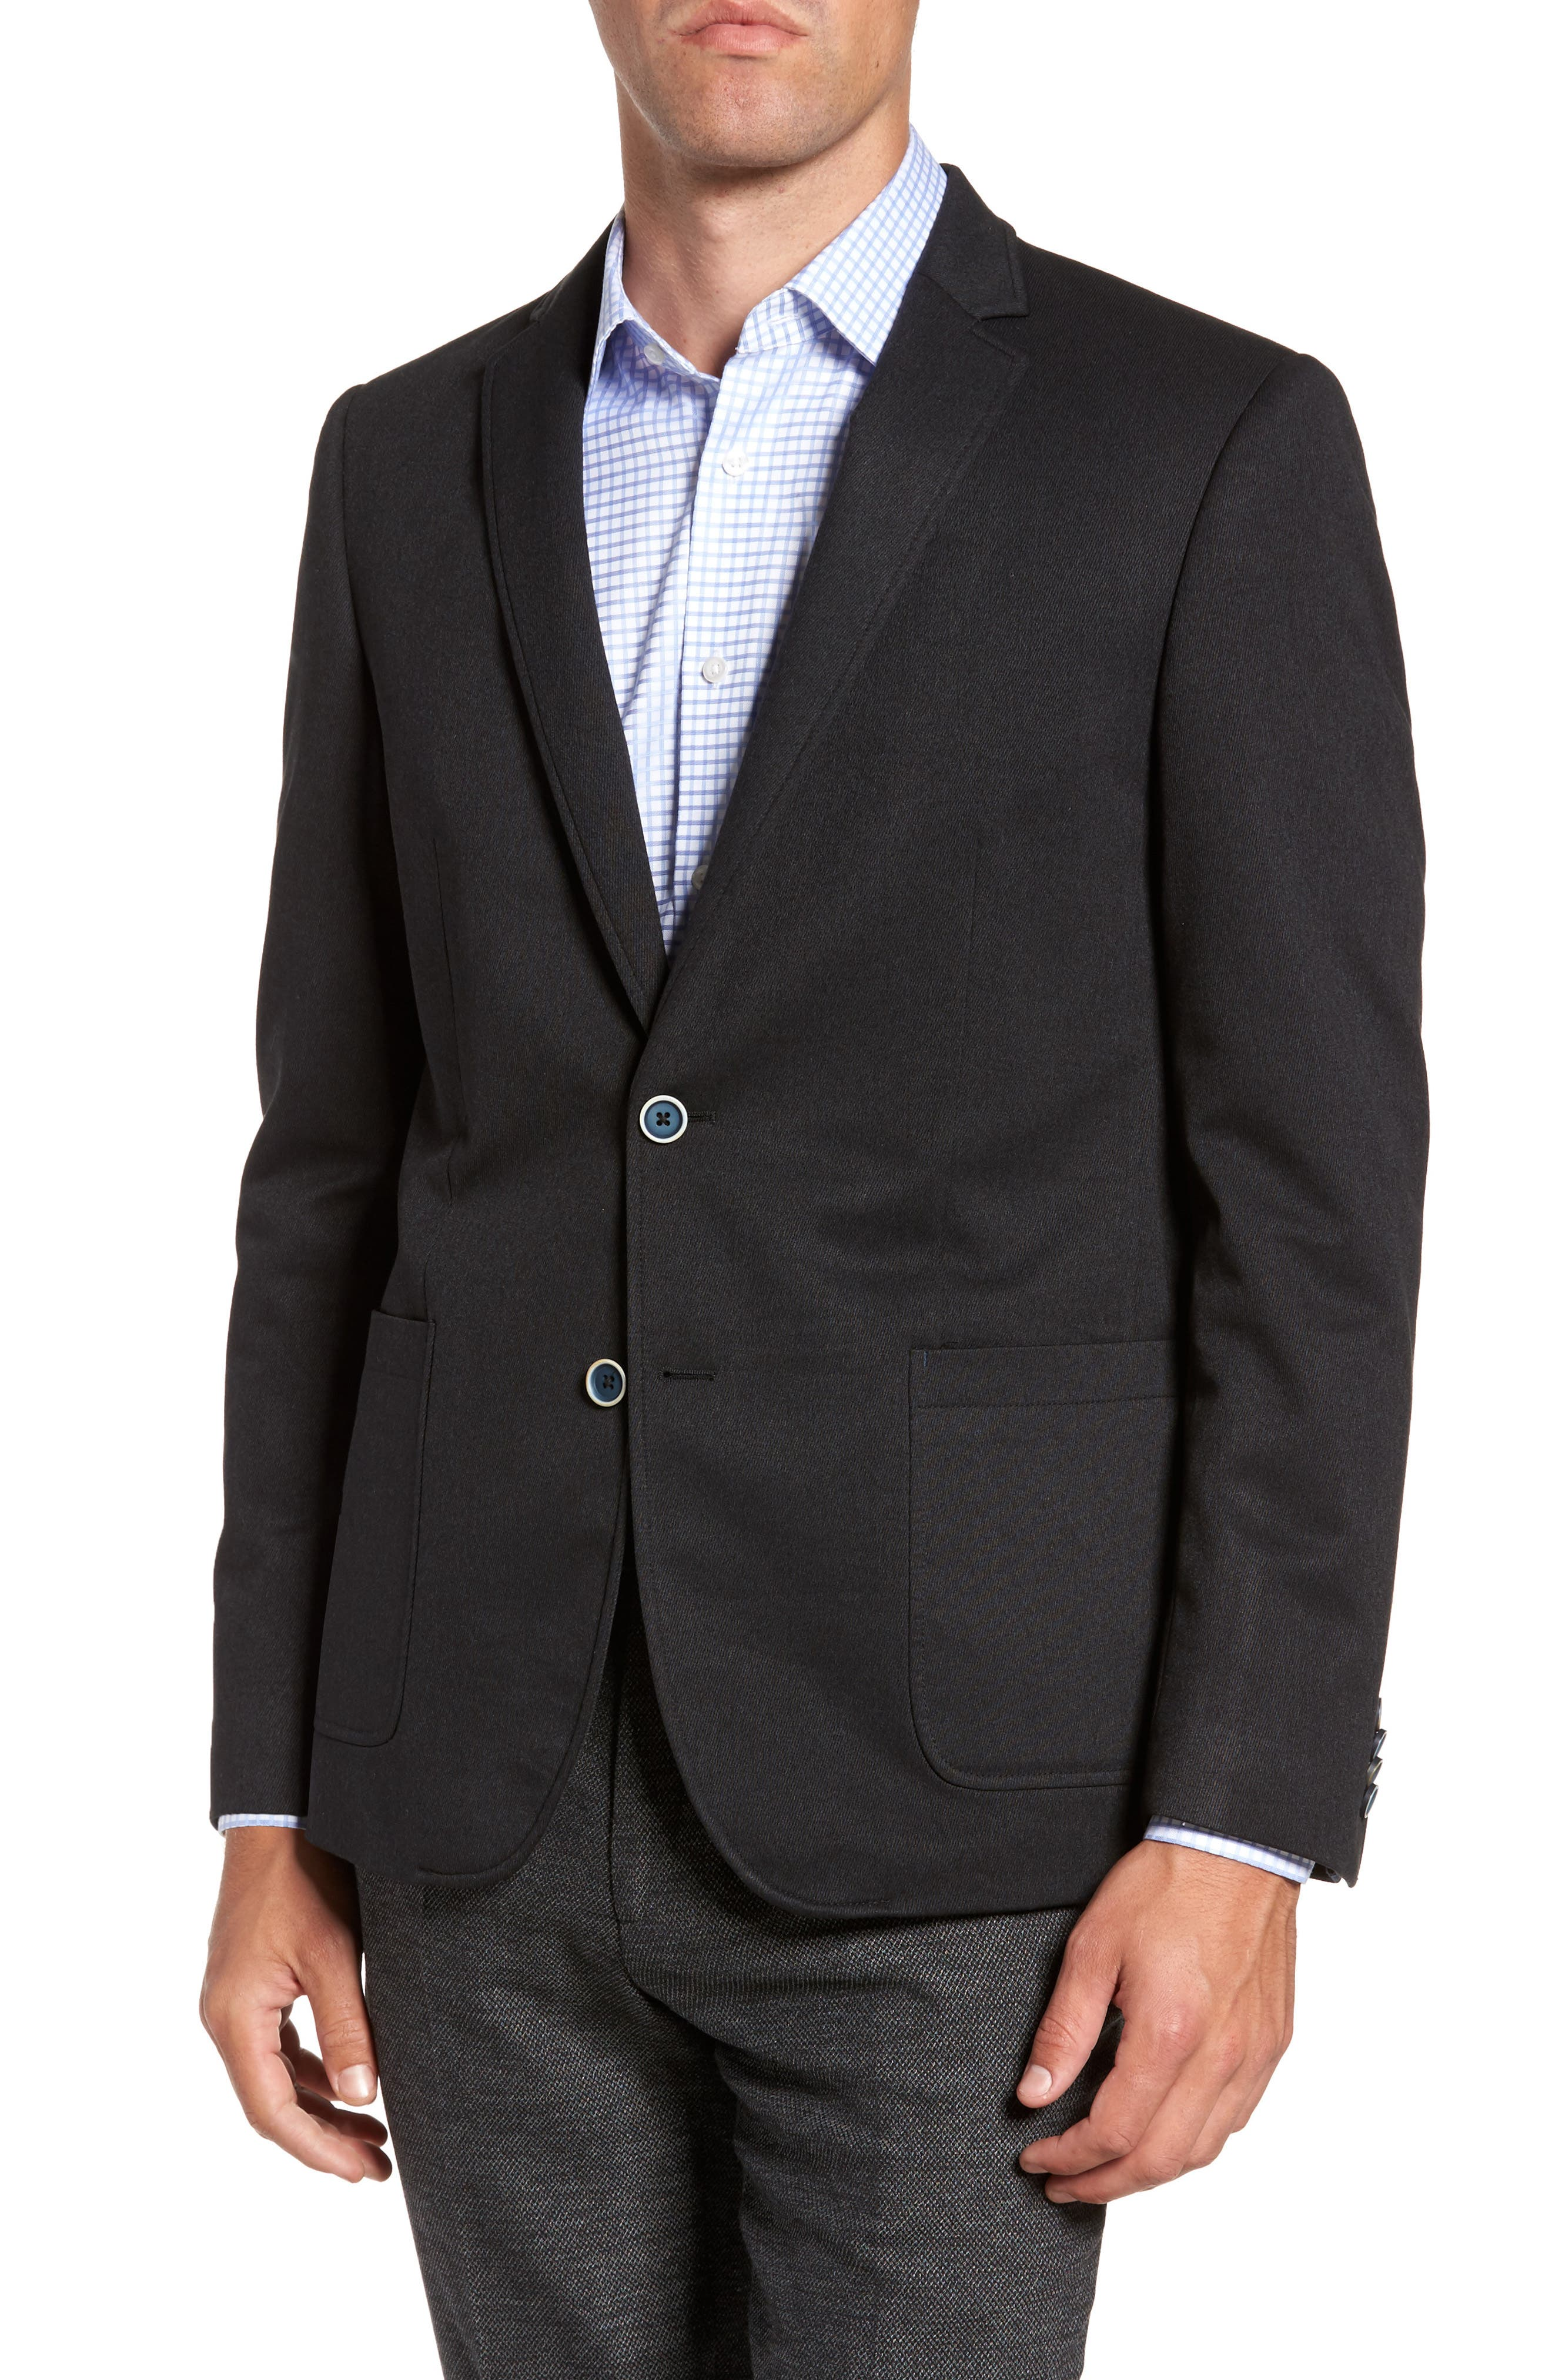 Broderick Technical Outerwear Jacket with Detachable Knit Bib,                             Alternate thumbnail 4, color,                             Navy